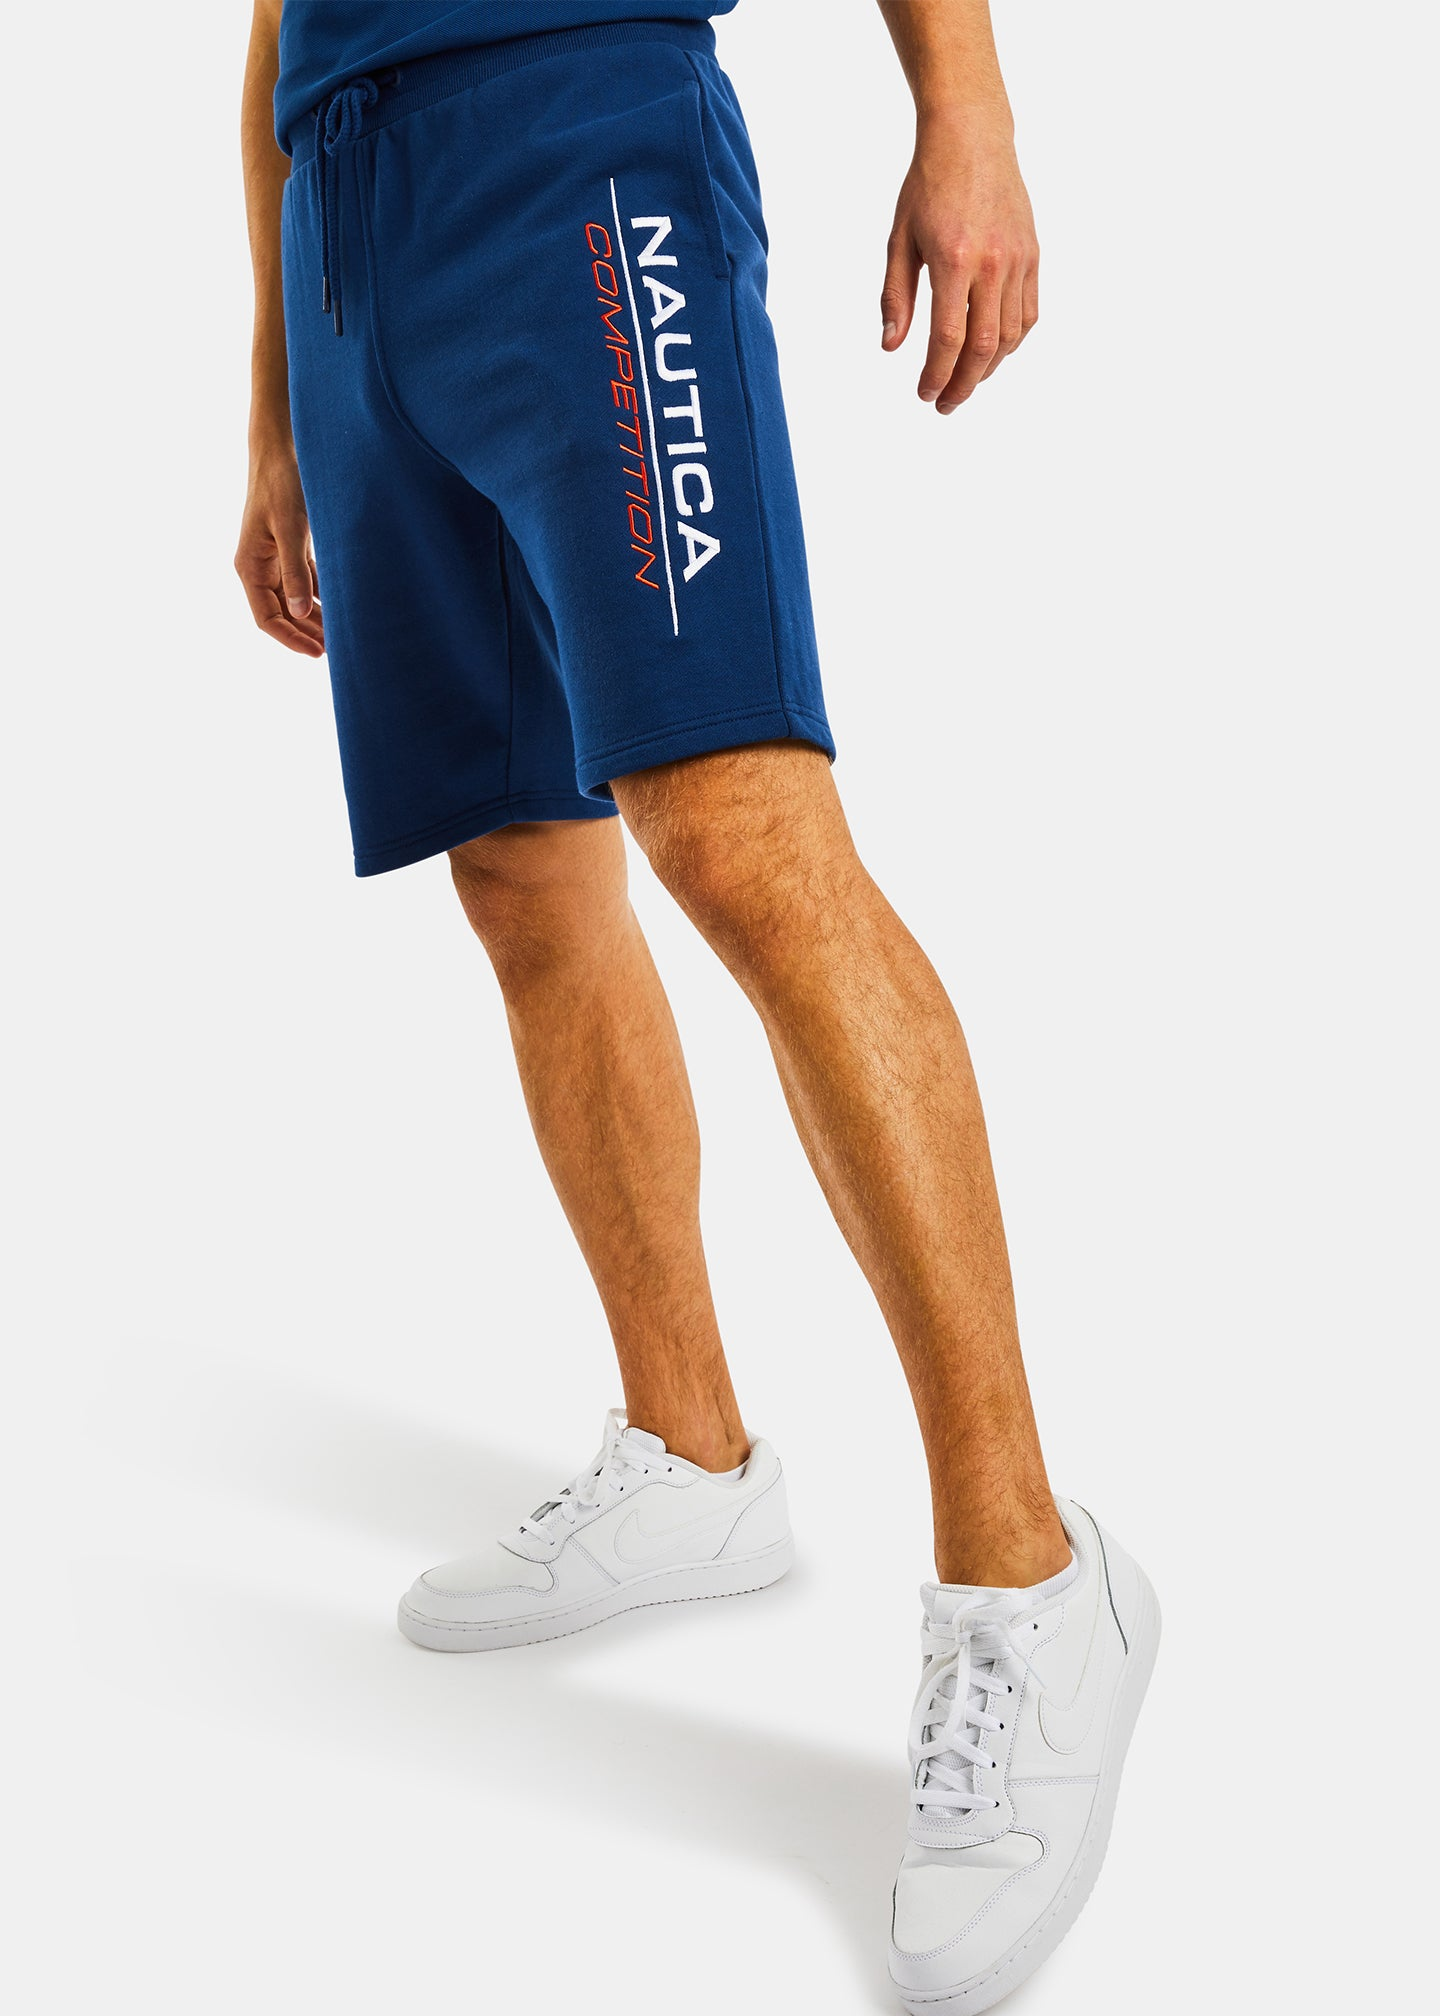 Dodger Fleece Short - Navy